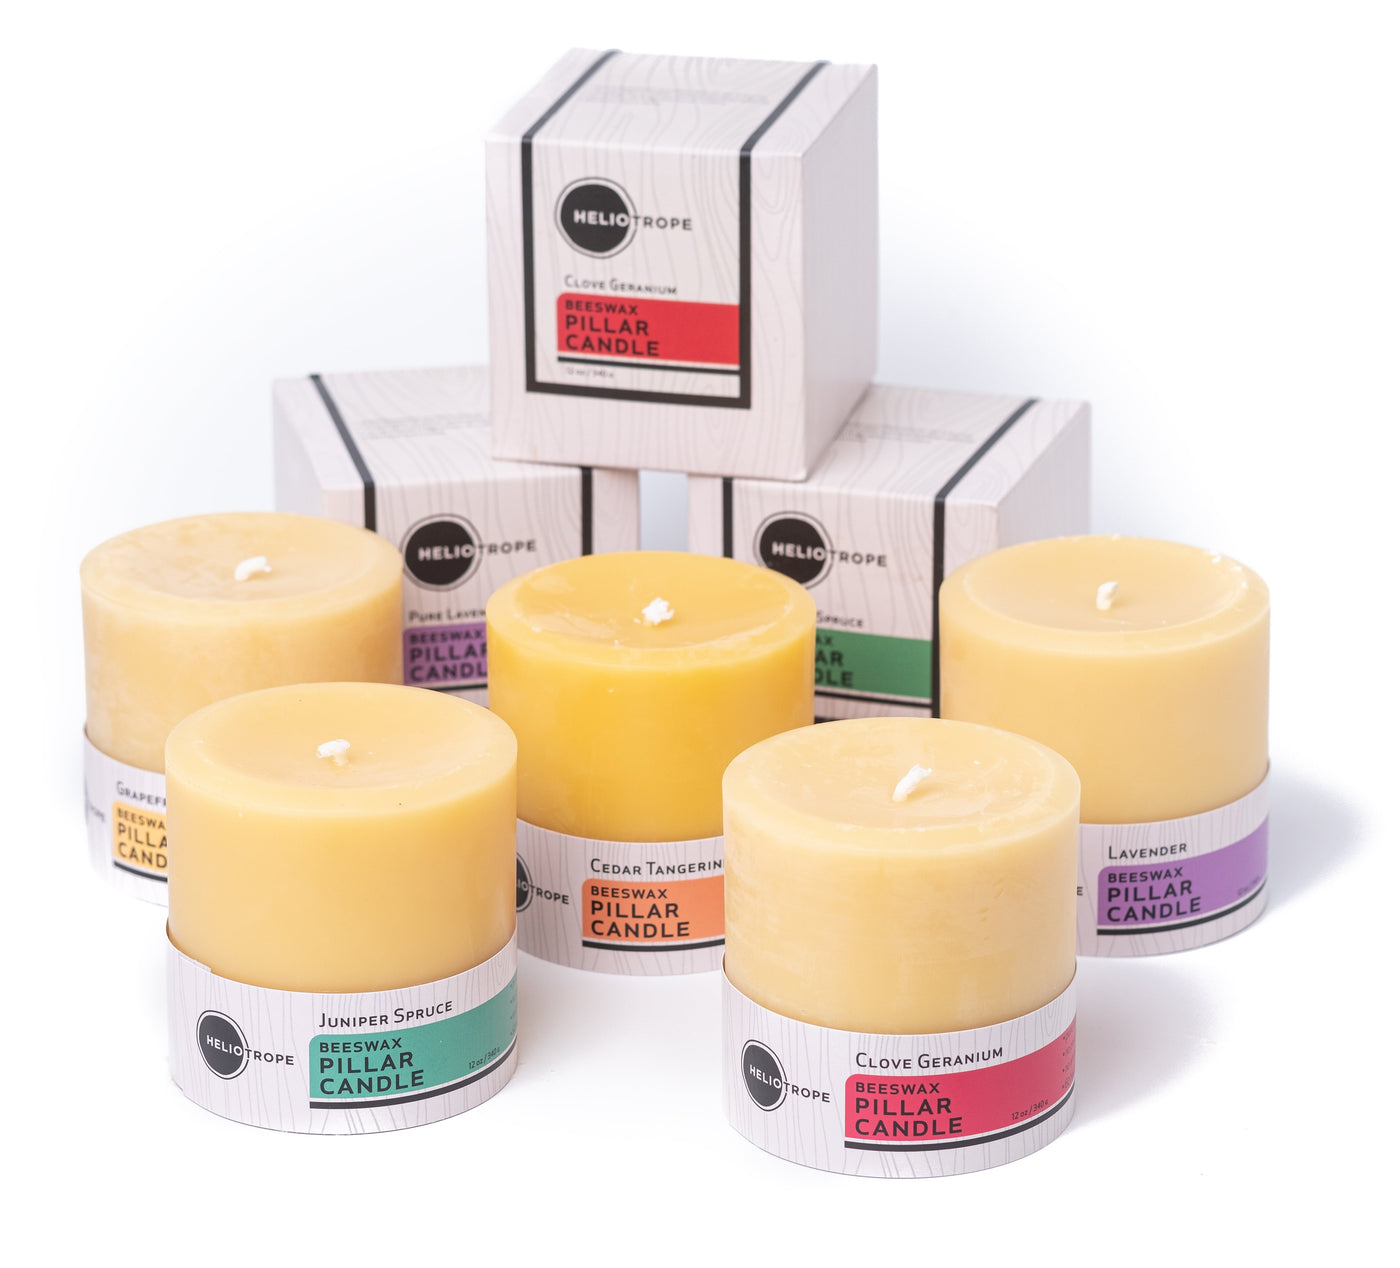 Beeswax Soy Pillar Candles Heliotrope San Francisco